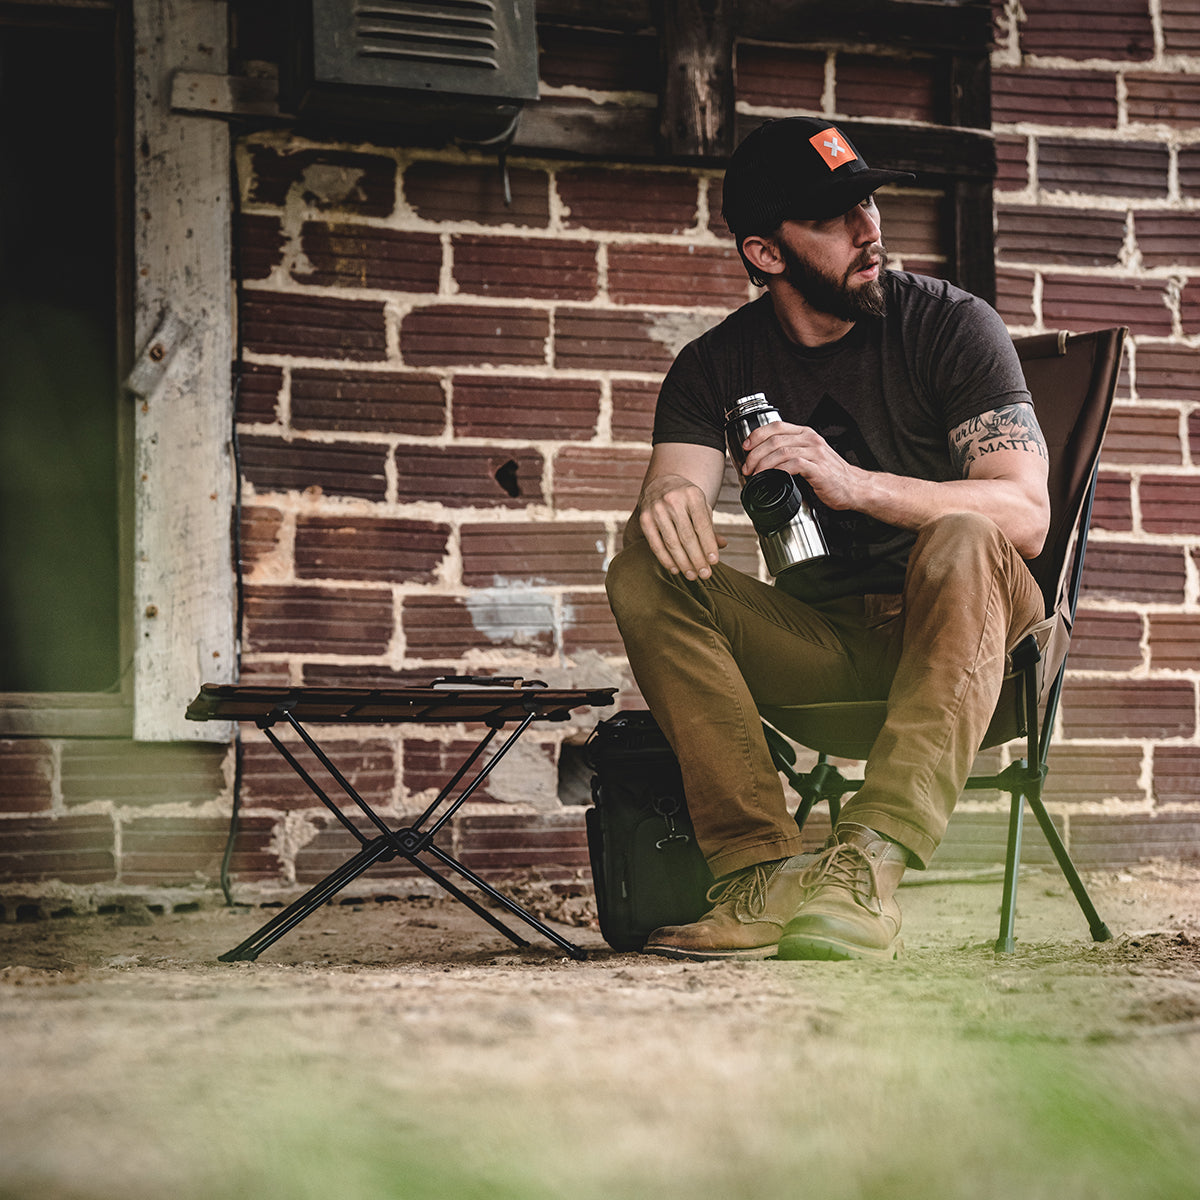 Helinox + Filson Collaboration Filson Tactical Sunset Chair